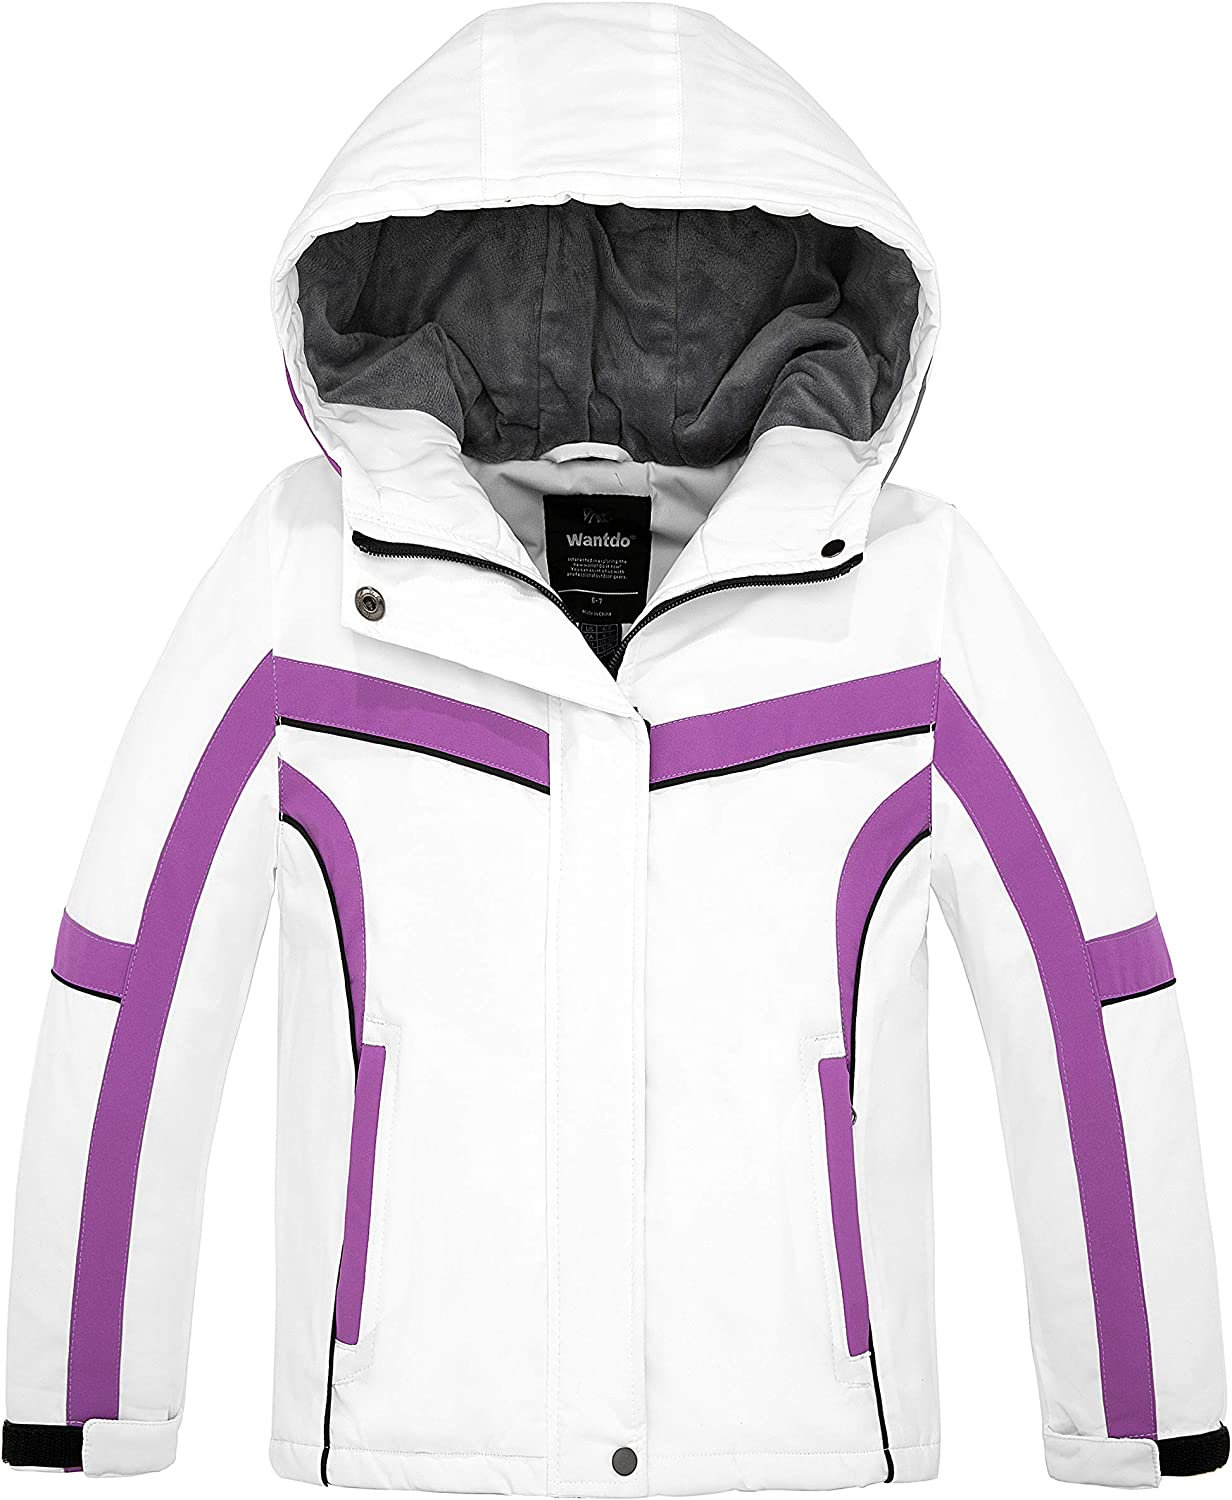 Wantdo Girl's Waterproof Ski Jackets Max 75% OFF Snowboard Windproof Jacket Today's only